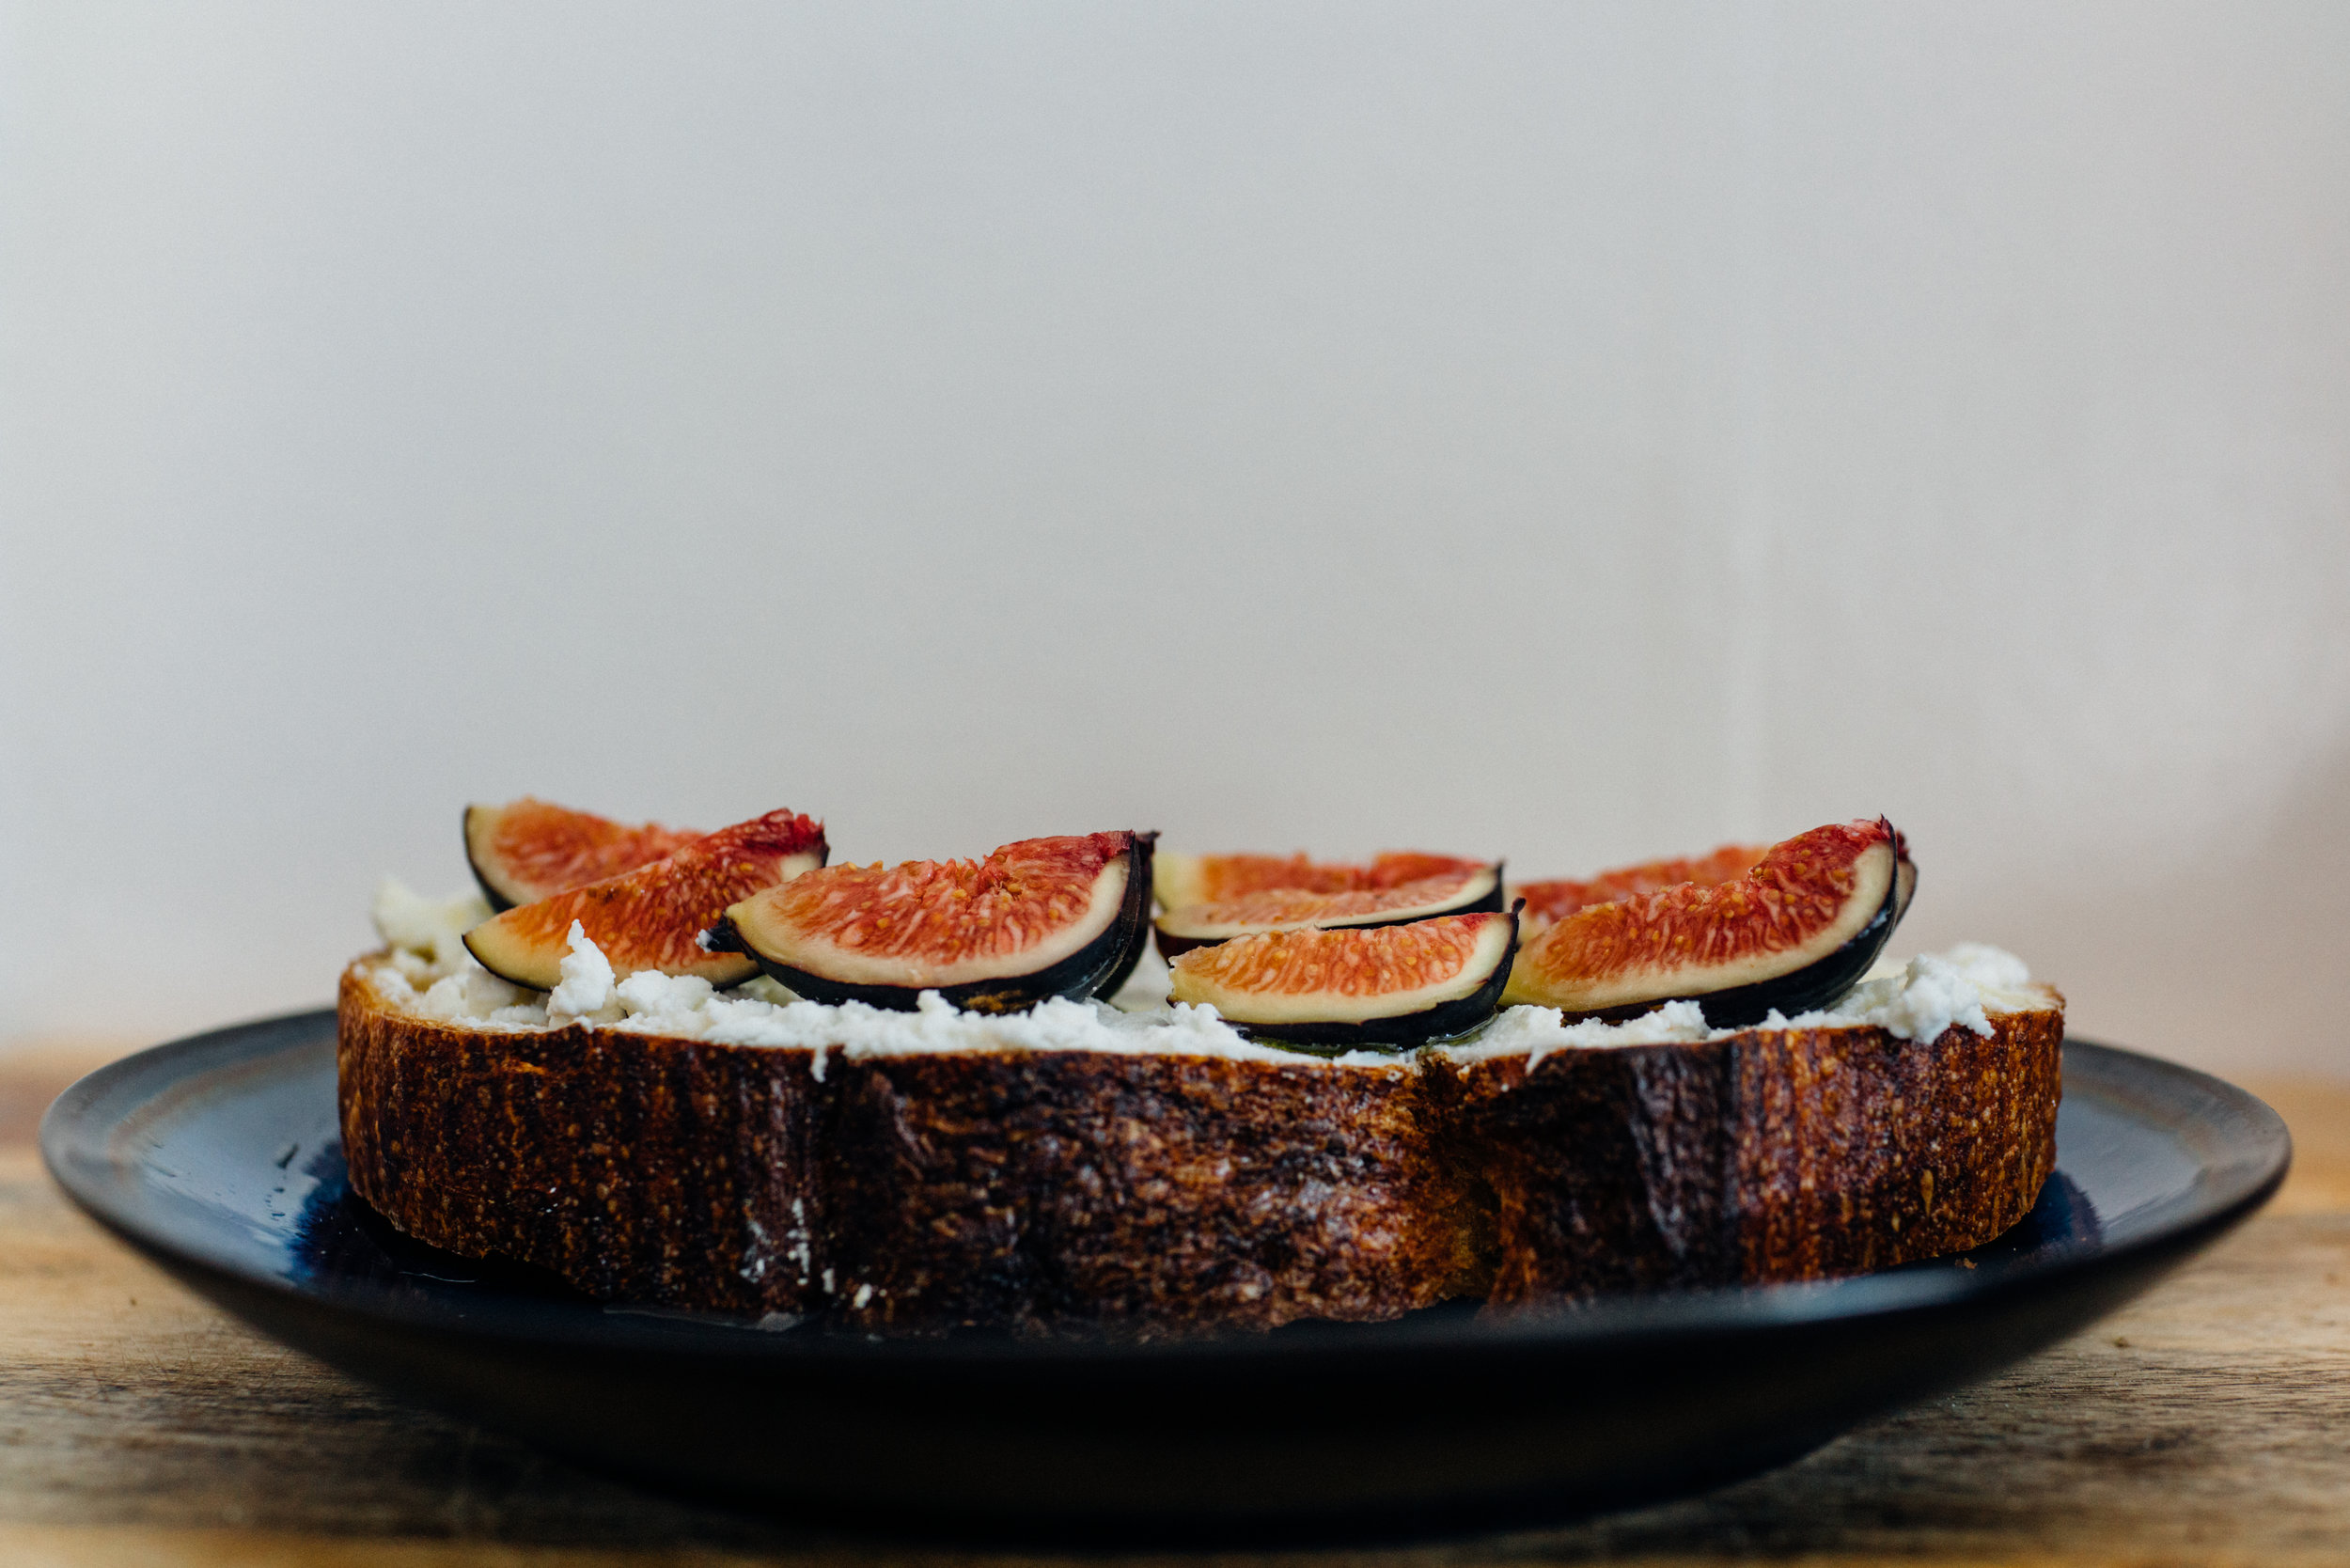 Josey Baker's country load with Ricotta, Local Figs, finished with Extra Virgin Olive Oil